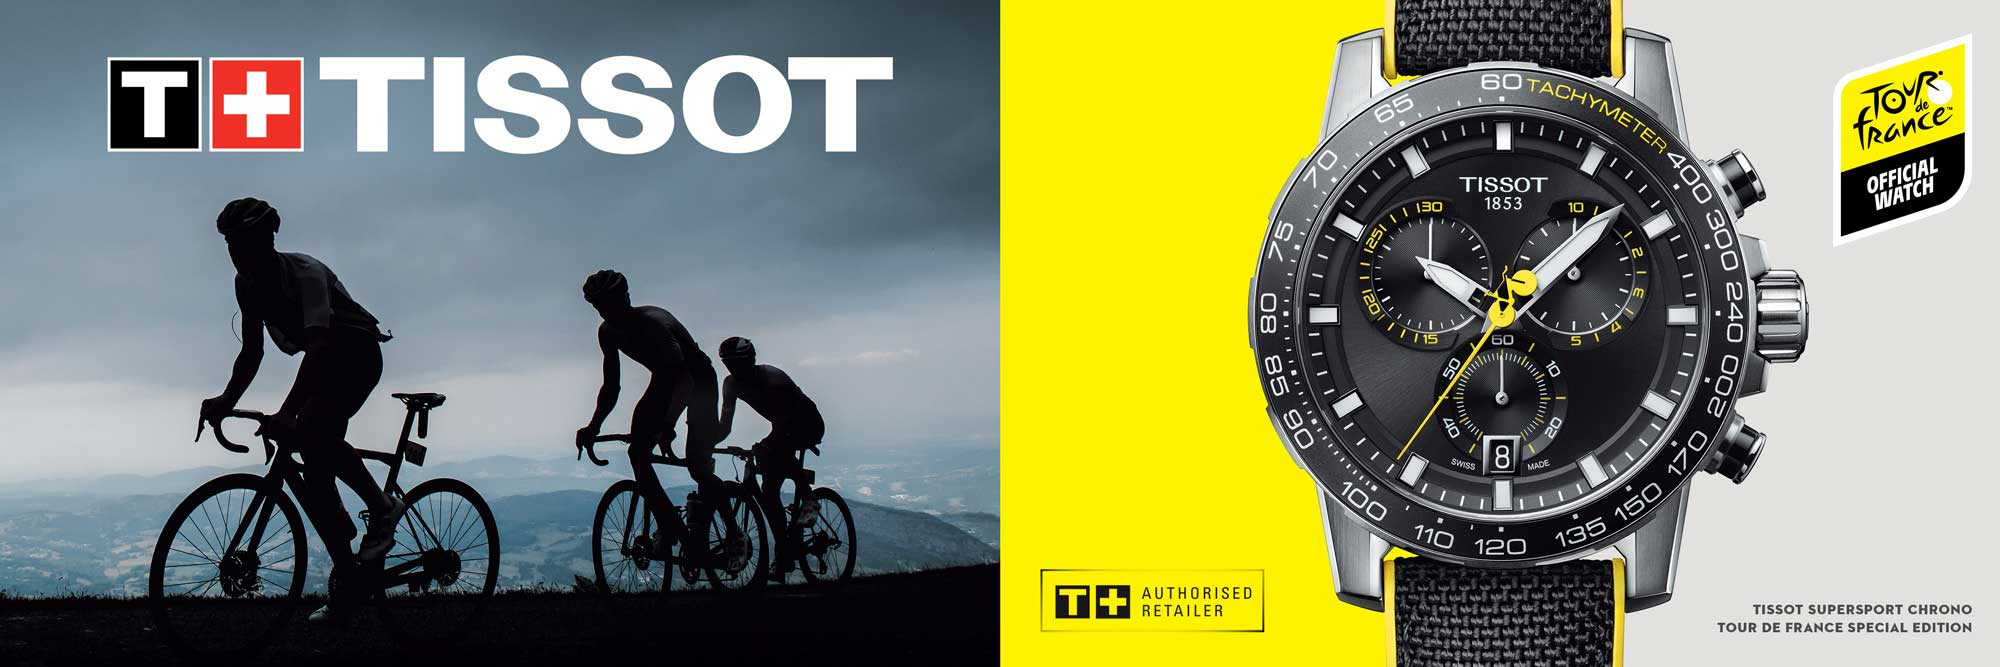 Tissot Watches East Grinstead